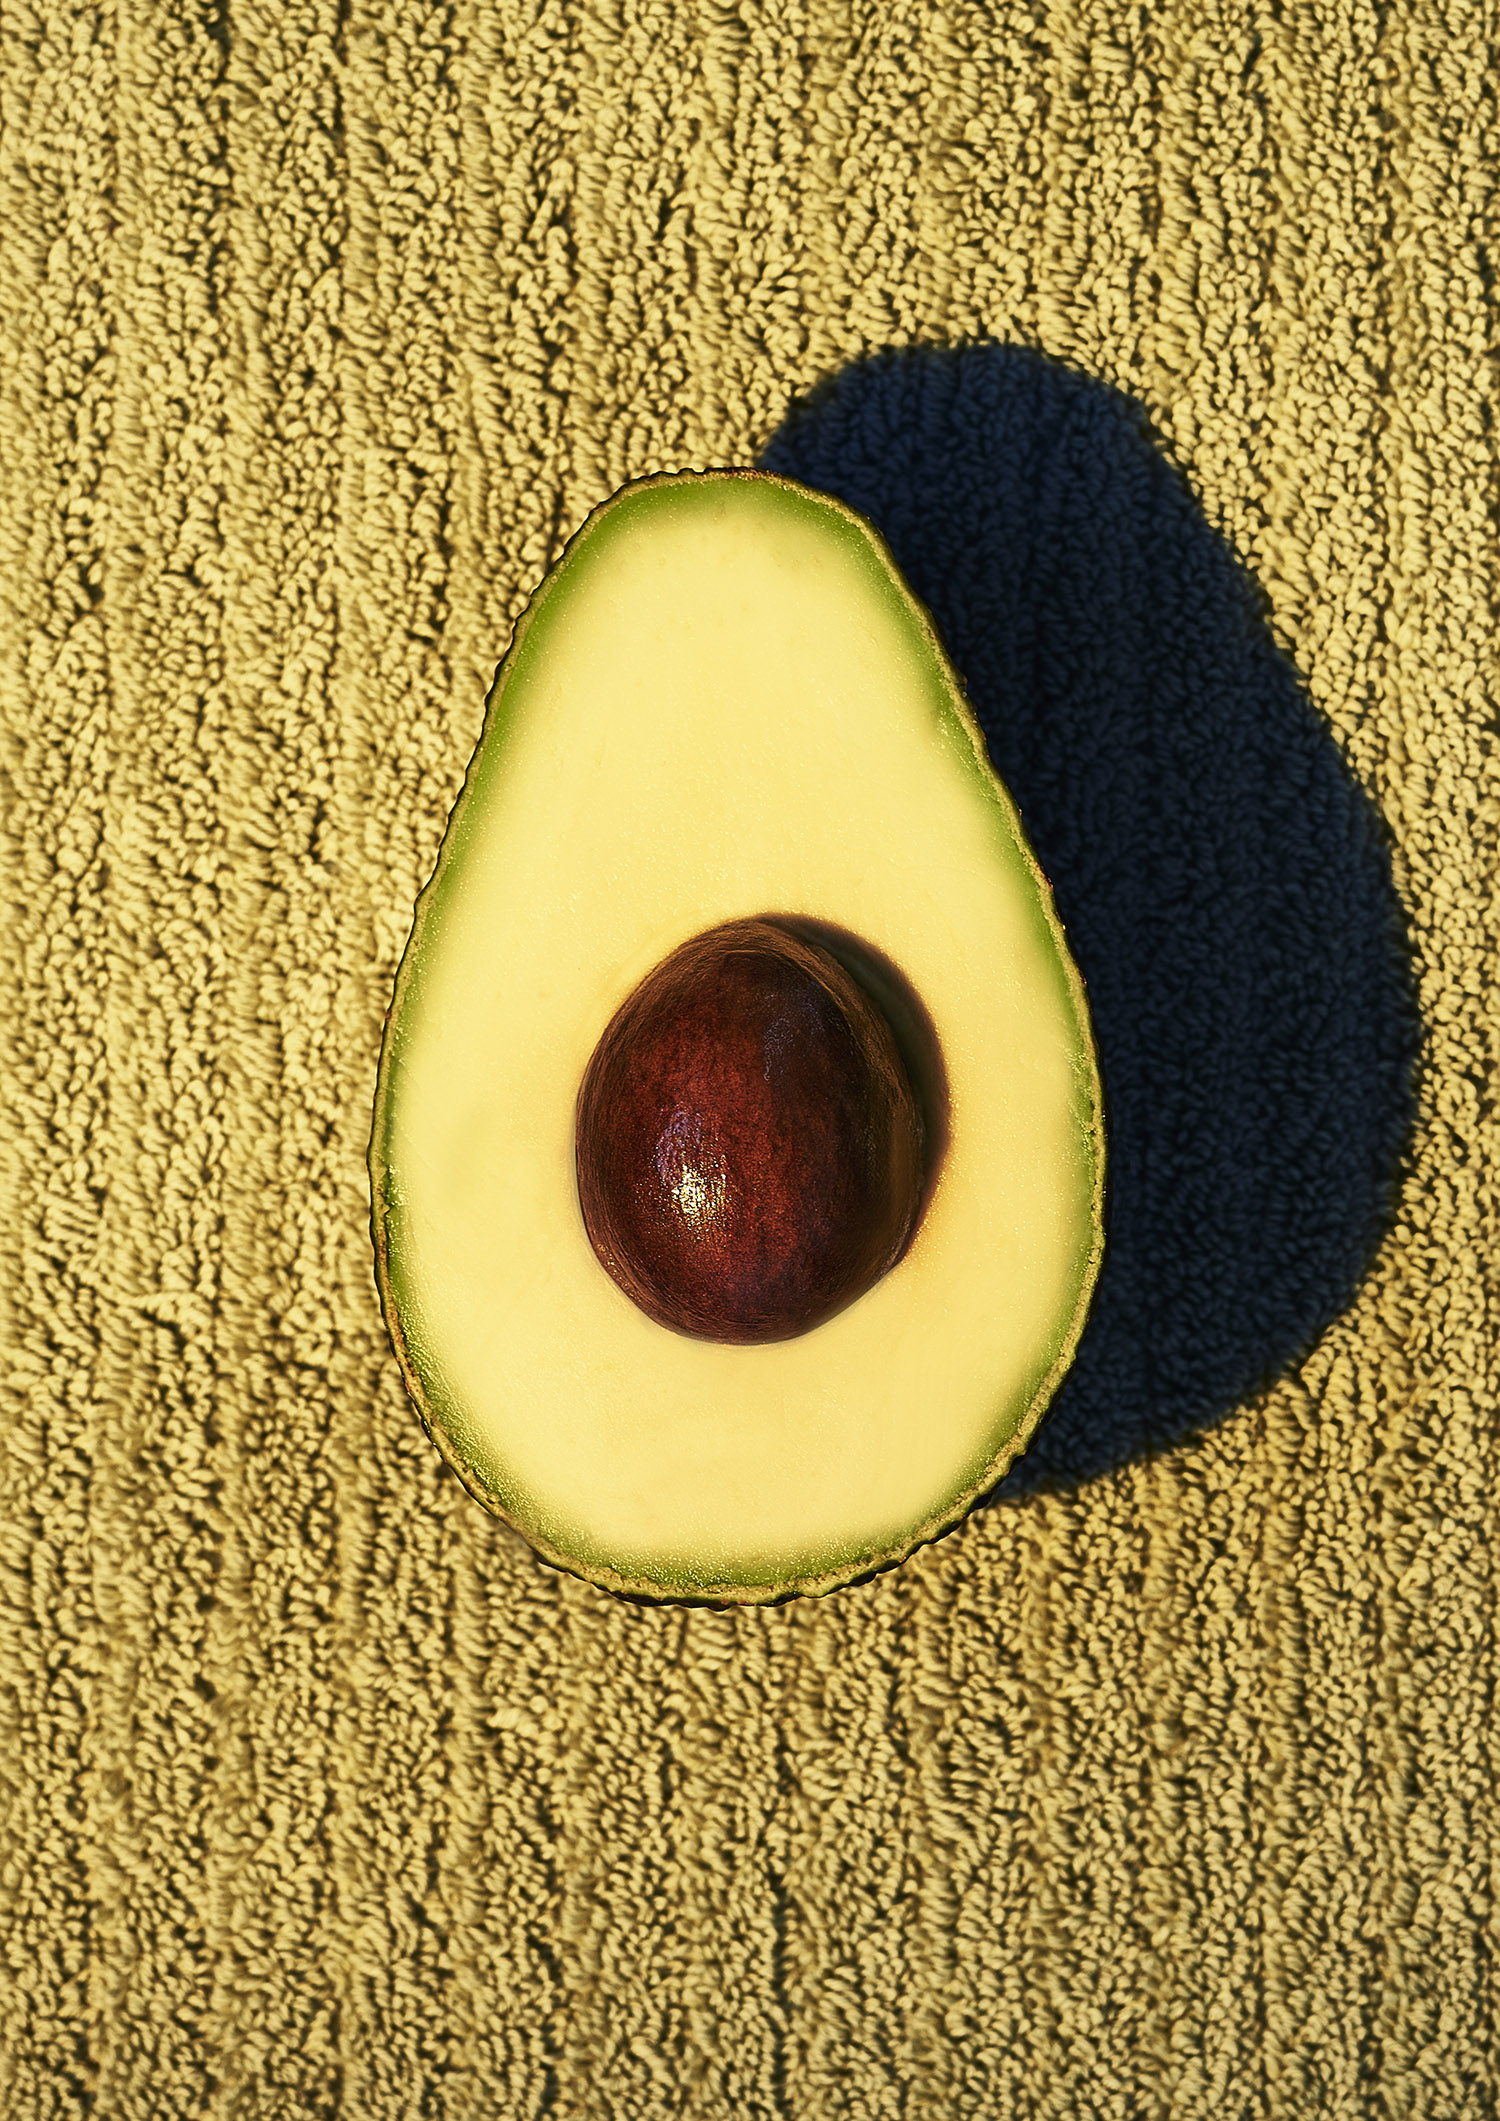 Avocado_A3 copy.jpg